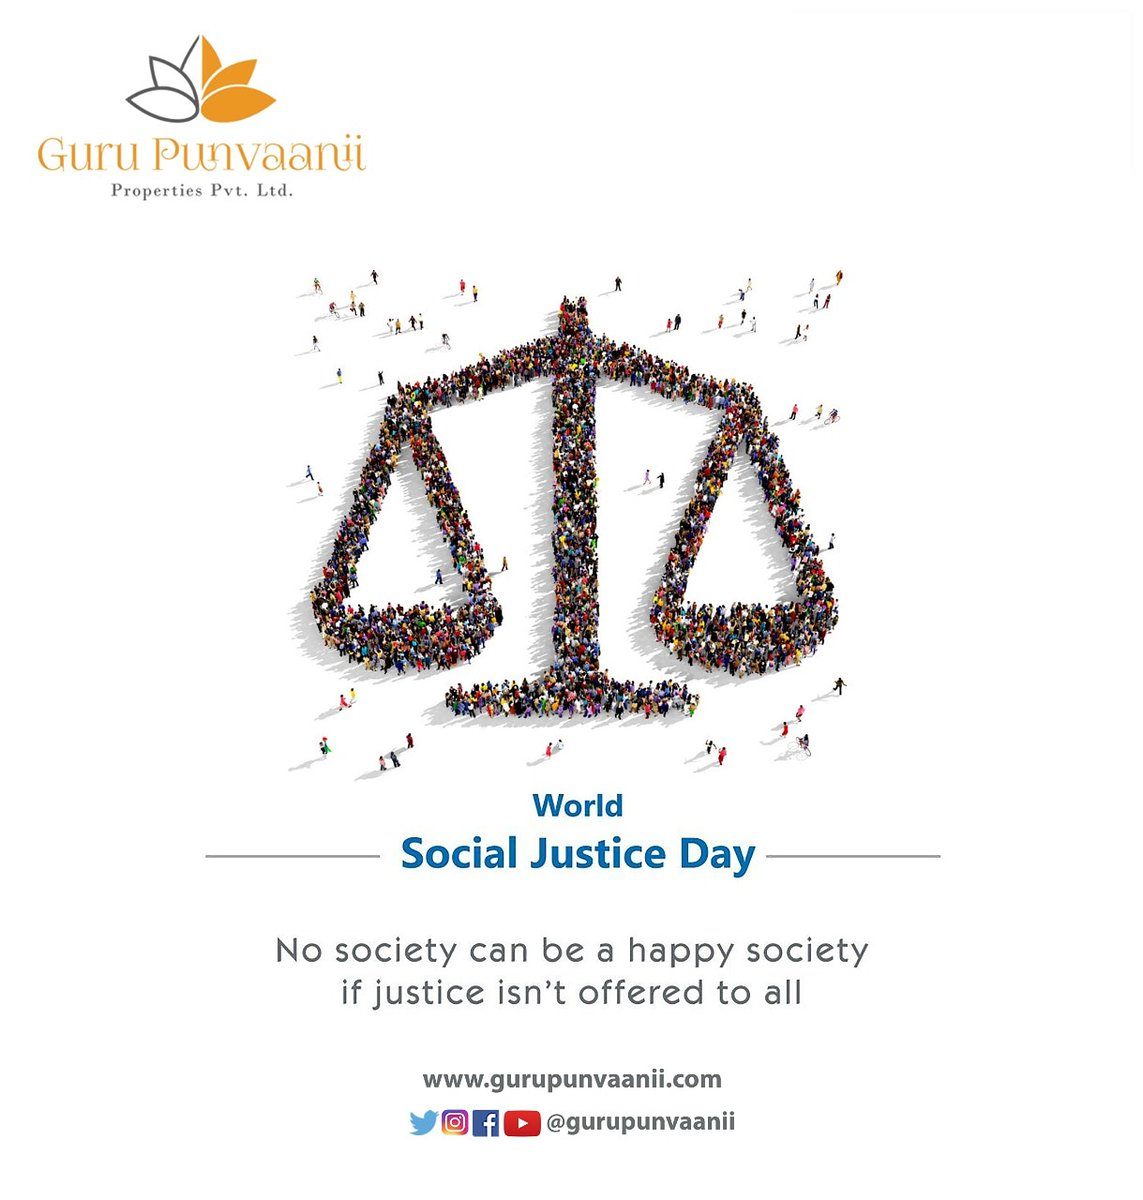 World Social Justice Day.   http://www.gurupunvaanii.com   #worldsocialjusticeday #socialjustice #socialevent #gurupunvaanii #trendingnow #marketing #socialmedia #realestate #architecture #topicalspot #socialmediamarketing #instagram #digitalmarketing #designer #socialevent #graphicpic.twitter.com/P64QjzWSnO